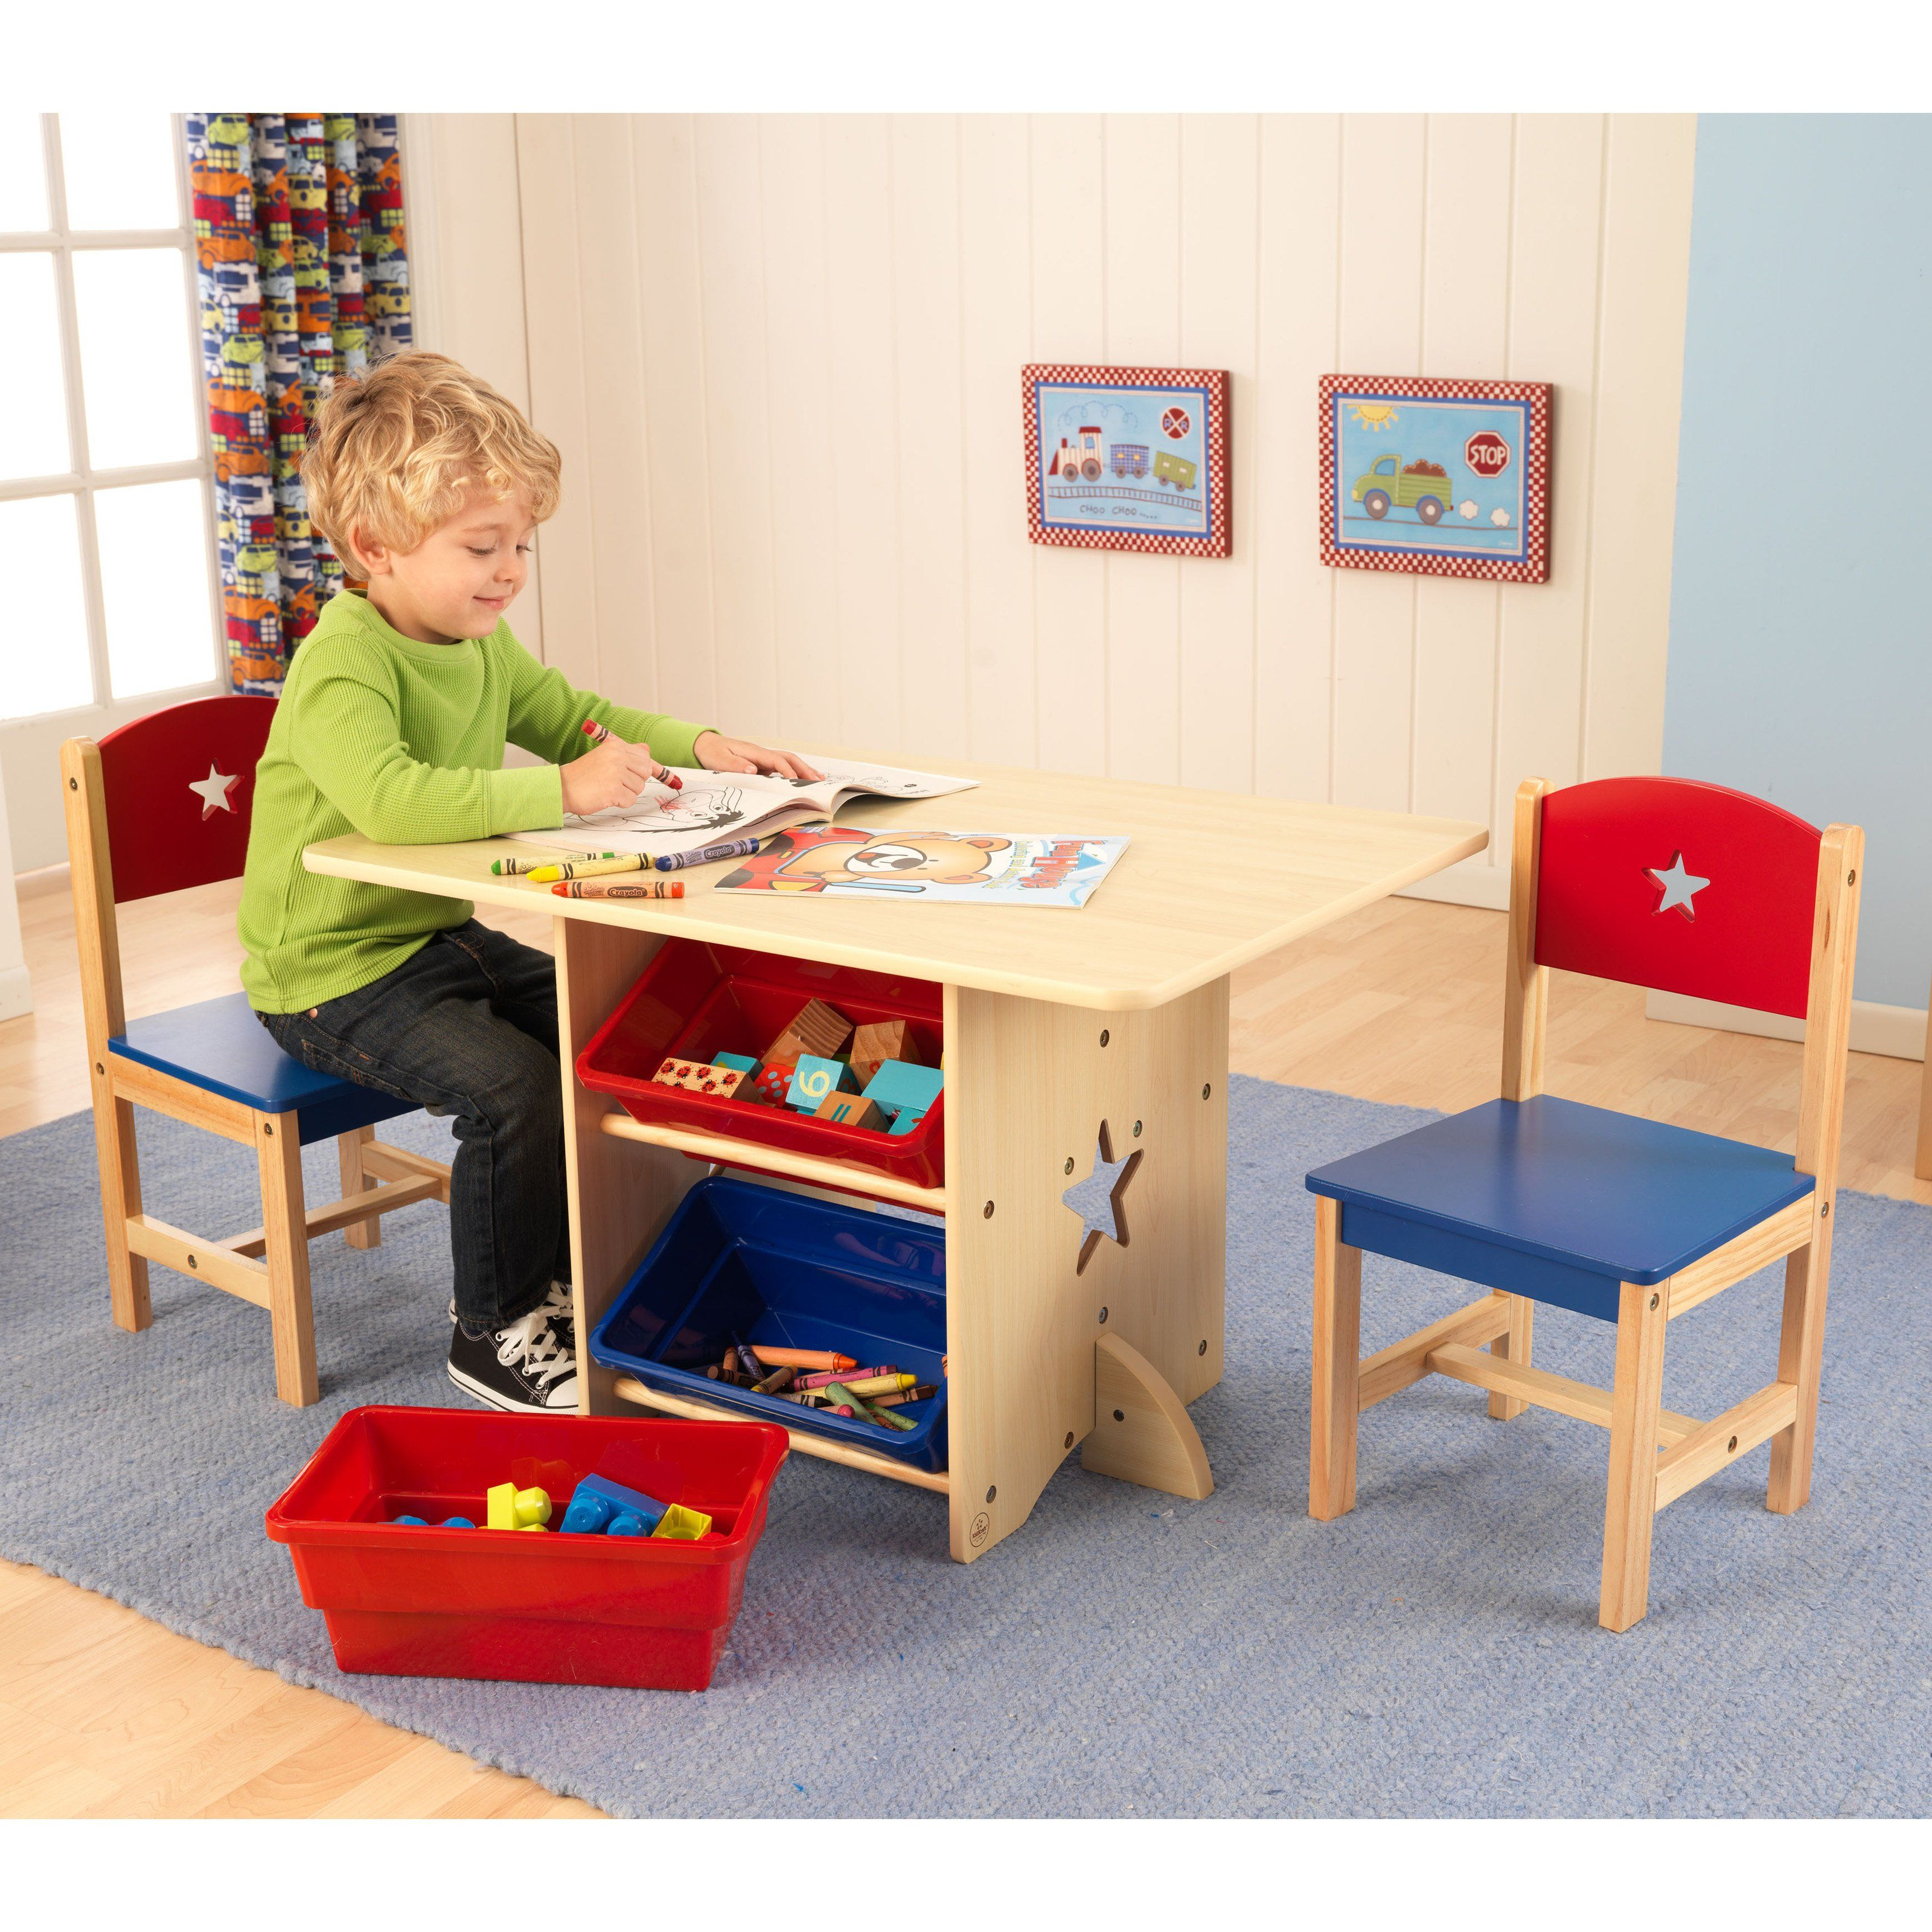 Swell Kidkraft Star Table And Chair Set With Primary Bins 26912 Cjindustries Chair Design For Home Cjindustriesco